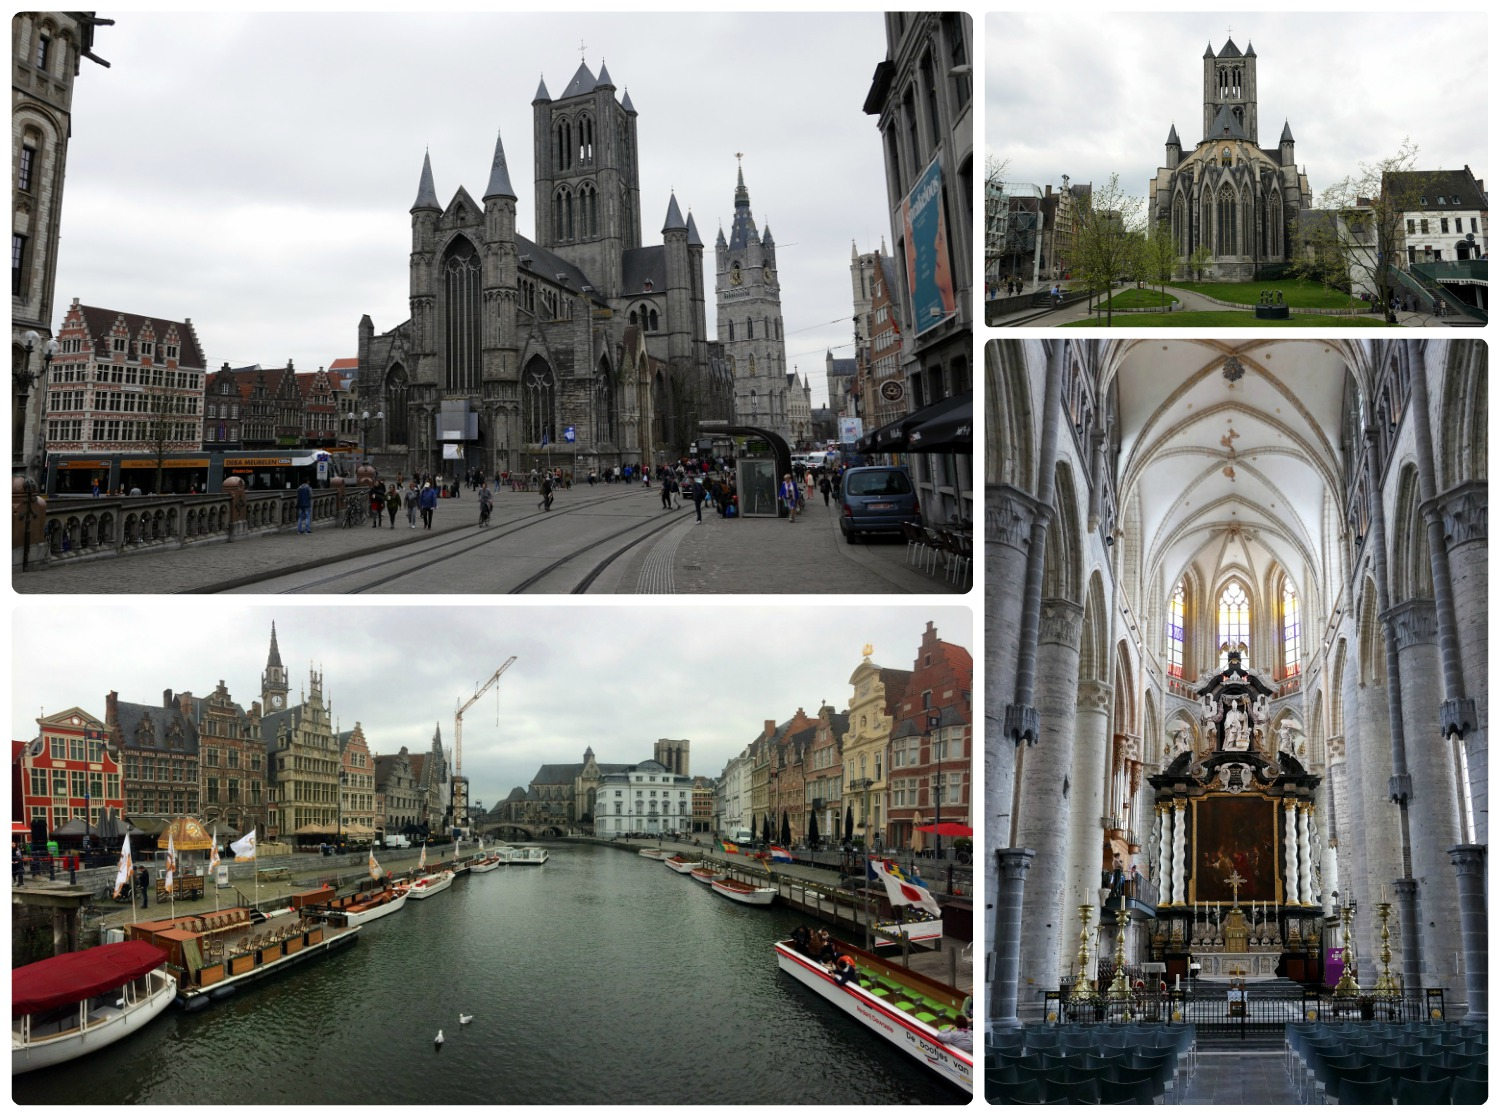 Clockwise: View of St. Nicholas' Church from St. Michael's Bridge, looking at St. Nicholas' Church from the park, interior of St. Nicholas' Church, view of Leie River and Graslei historic houses.